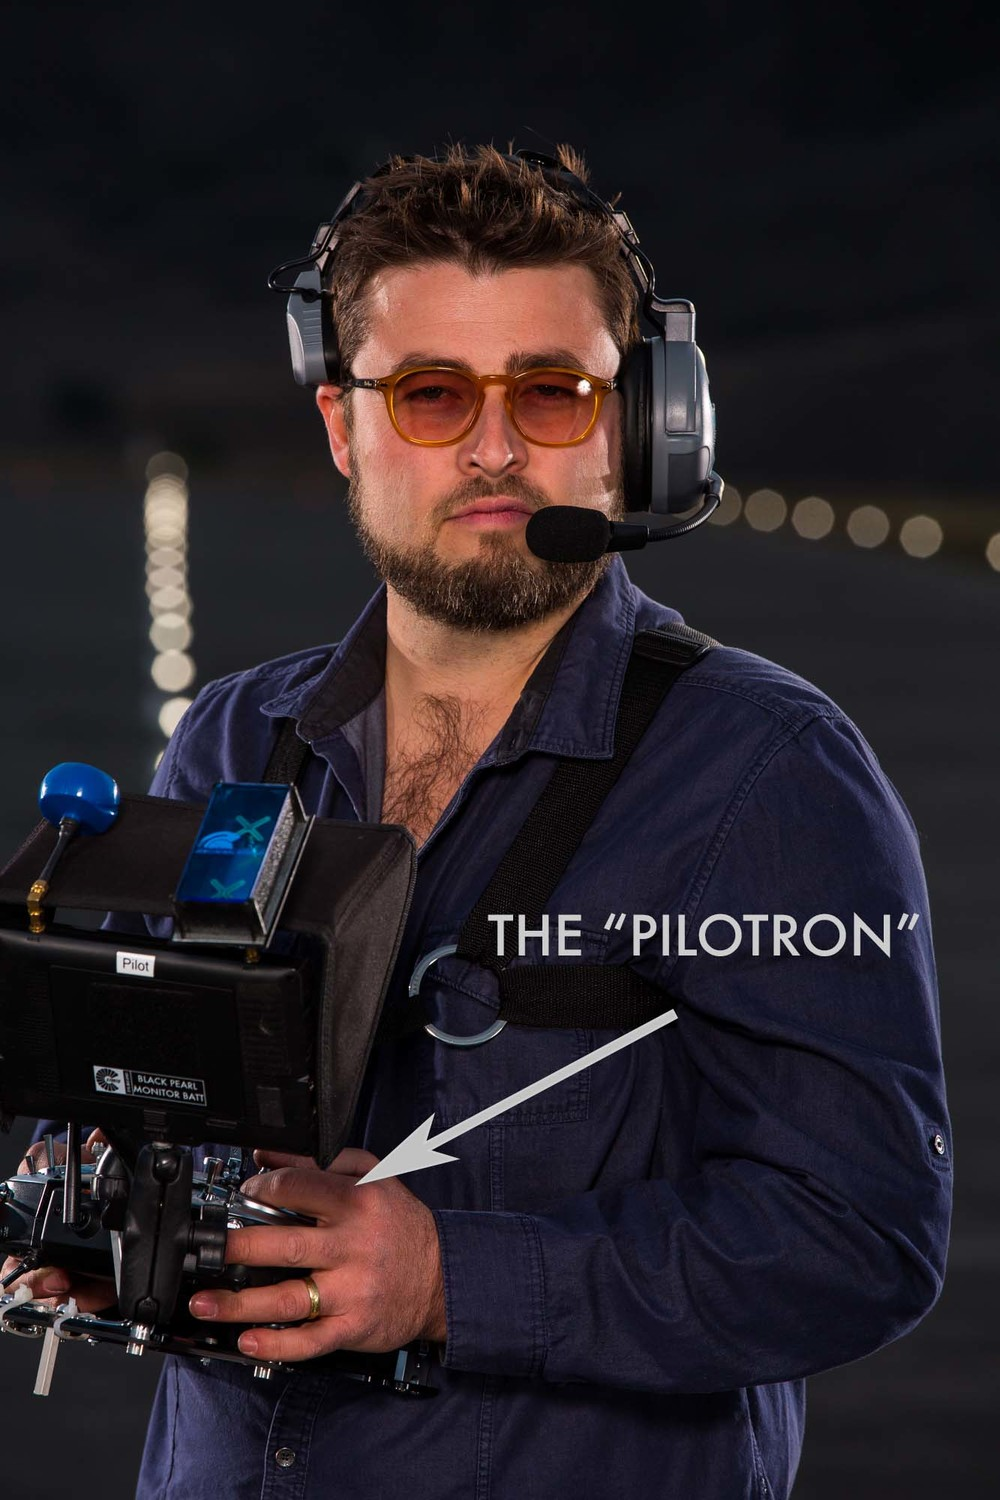 The Pilotron is serious business.